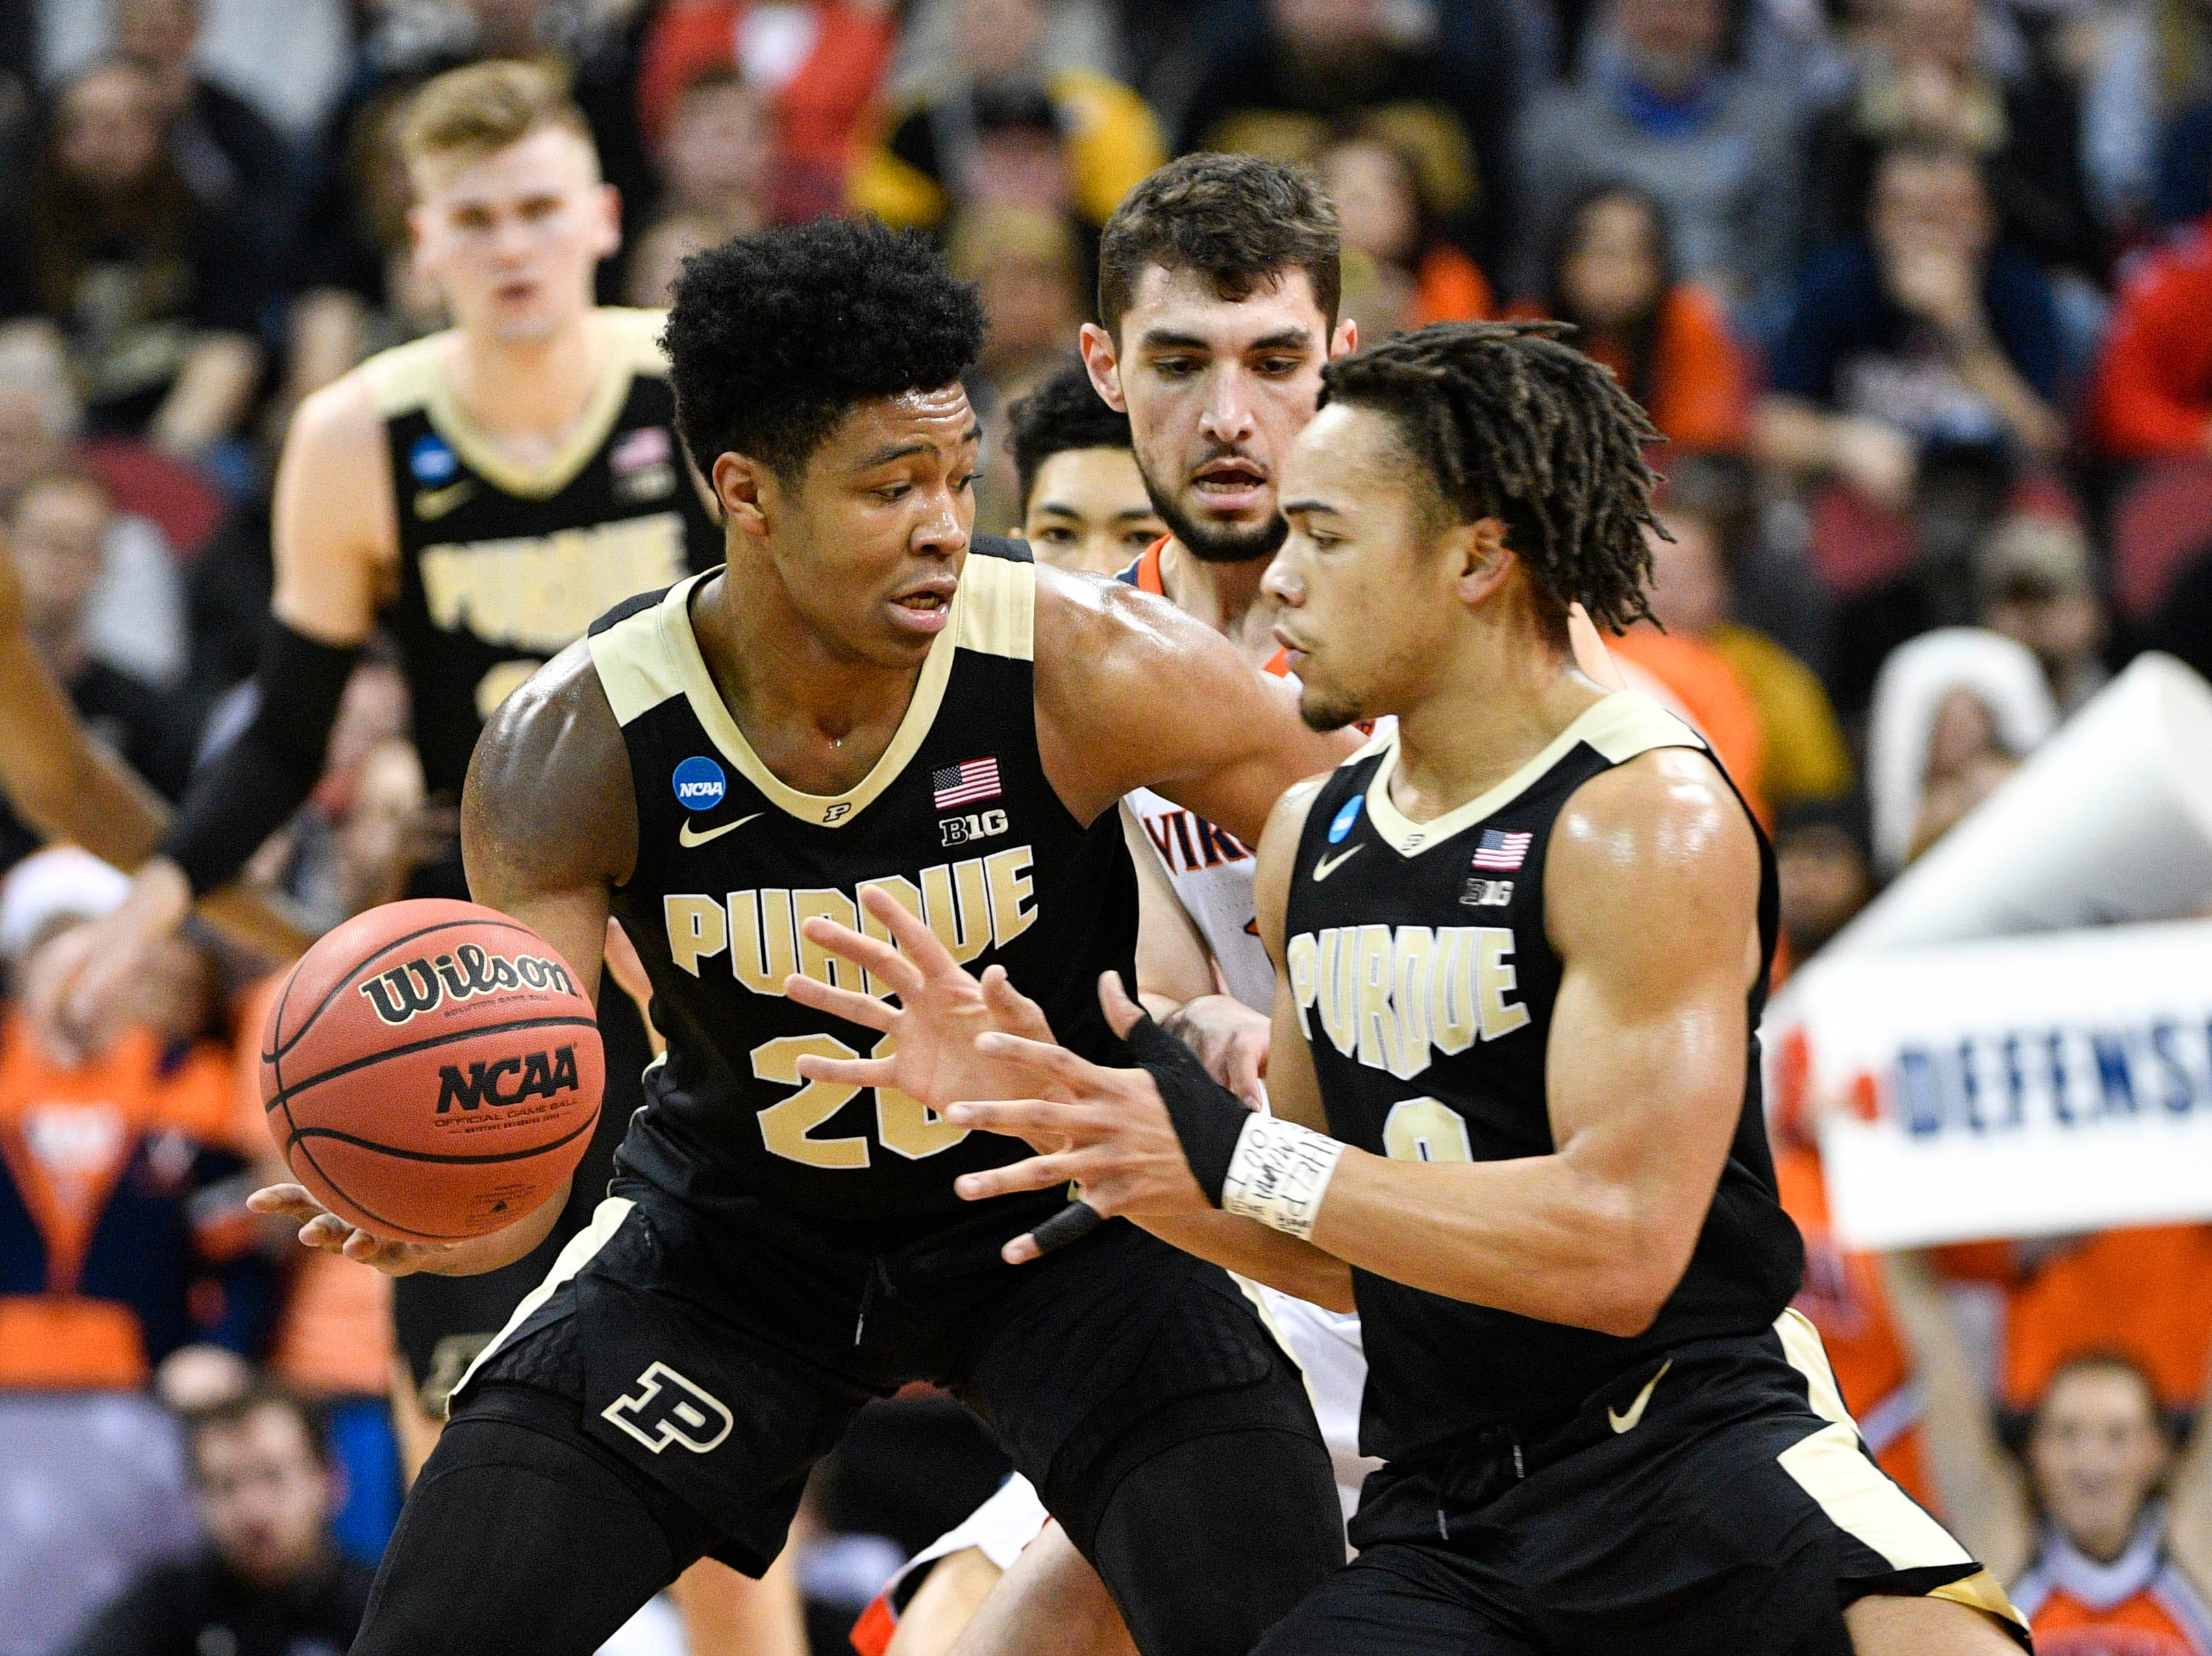 Mar 30, 2019; Louisville, KY, United States; Purdue Boilermakers guard Nojel Eastern (20) passes to guard Carsen Edwards (3) during the first half in the championship game against the Virginia Cavaliers of the south regional of the 2019 NCAA Tournament at KFC Yum Center. Mandatory Credit: Jamie Rhodes-USA TODAY Sports